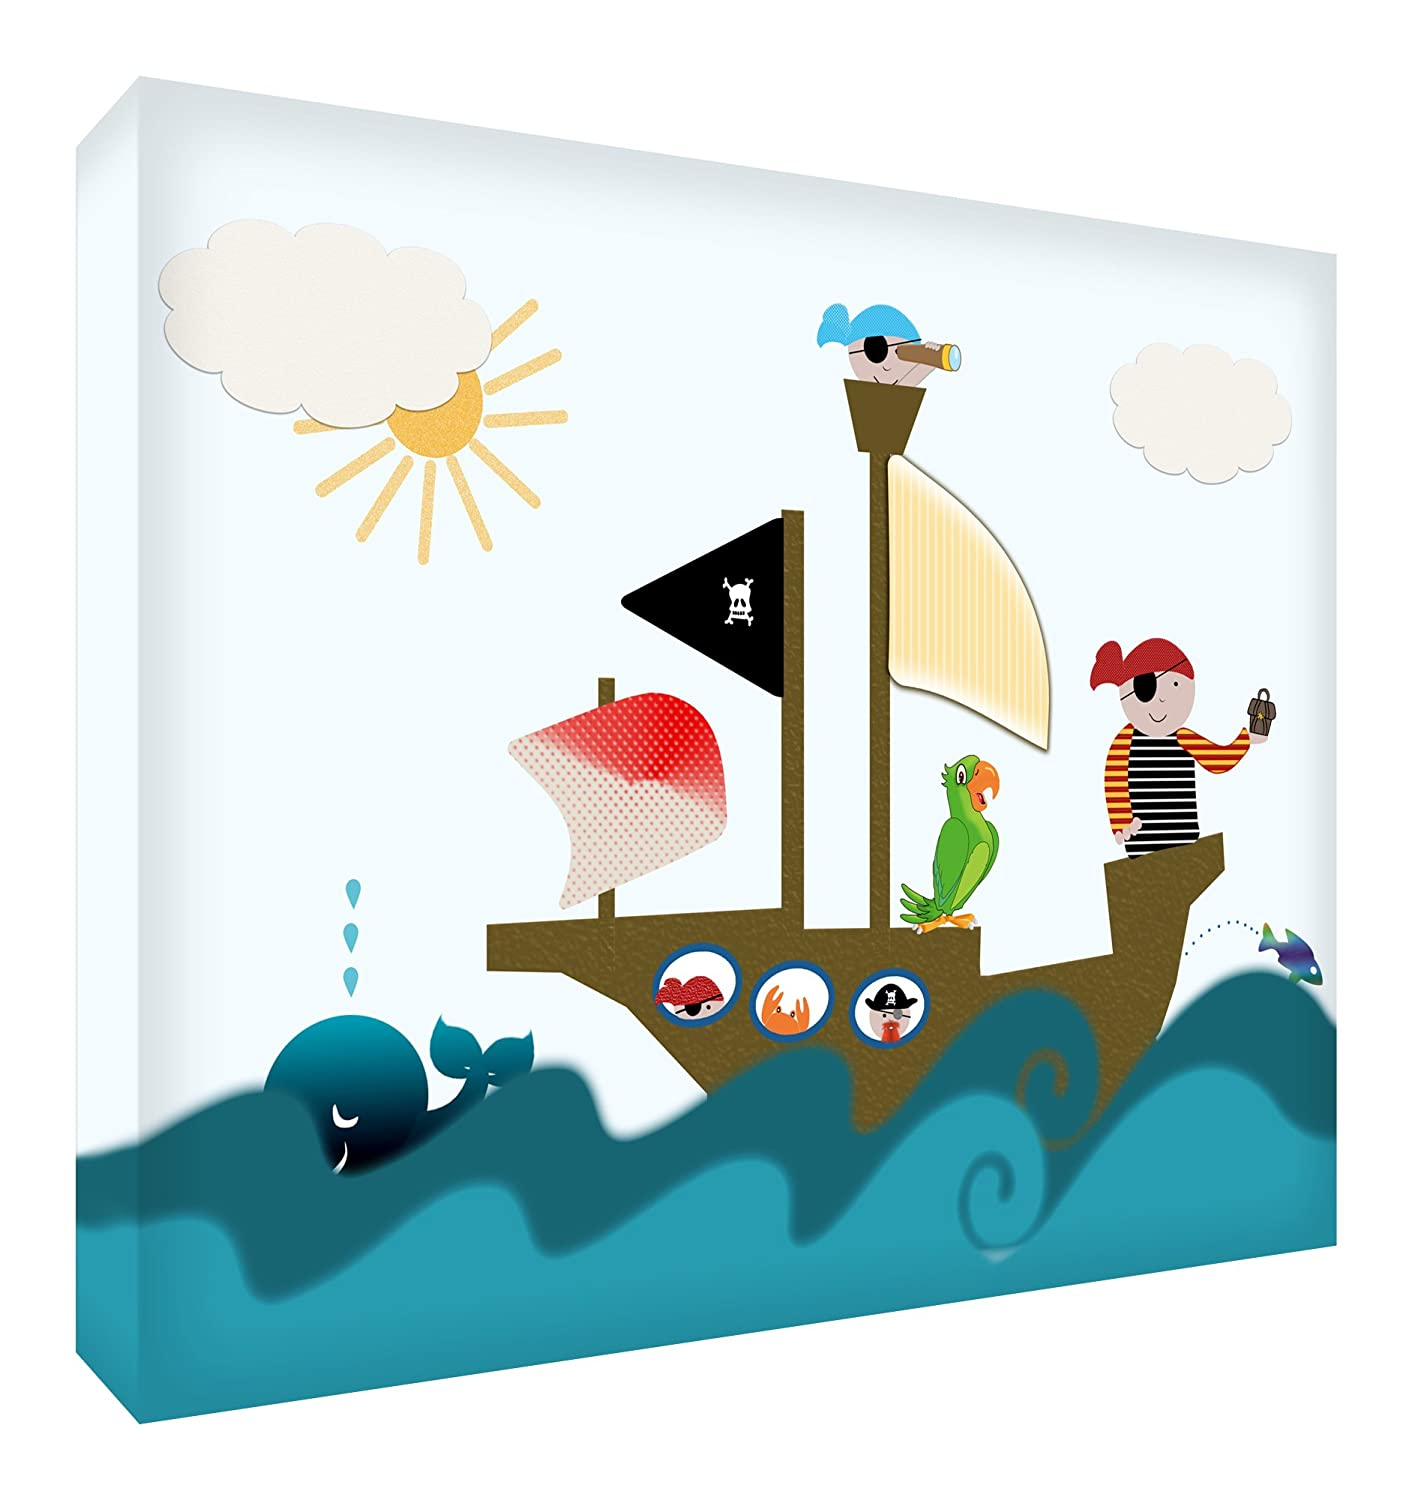 Feel Good Art A4 Pirates Gallery Wrapped Nursery Canvas with Solid Front Panel in Cute Illustrative Design (30 x 20 cm, Multi-Colour) PIRATES128-15